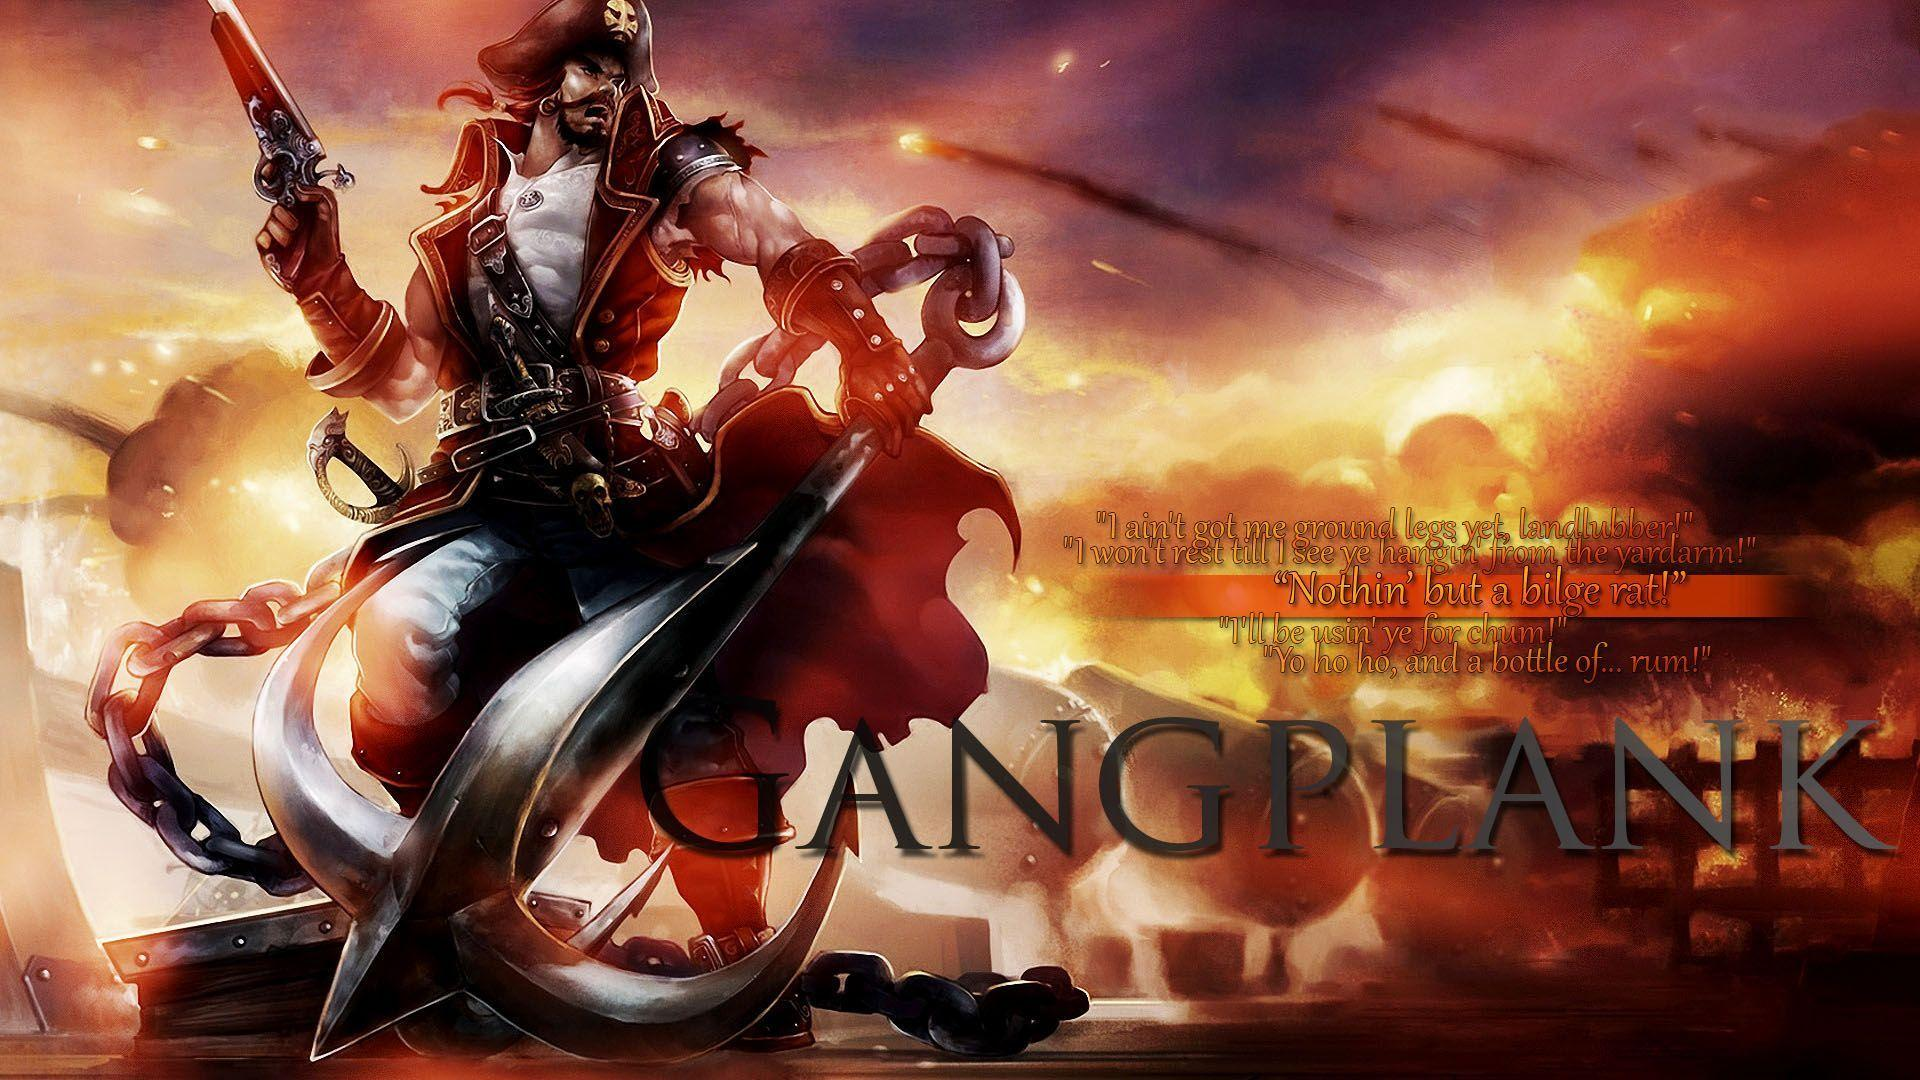 Gangplank wallpapers wallpaper cave - Fan wallpaper download ...